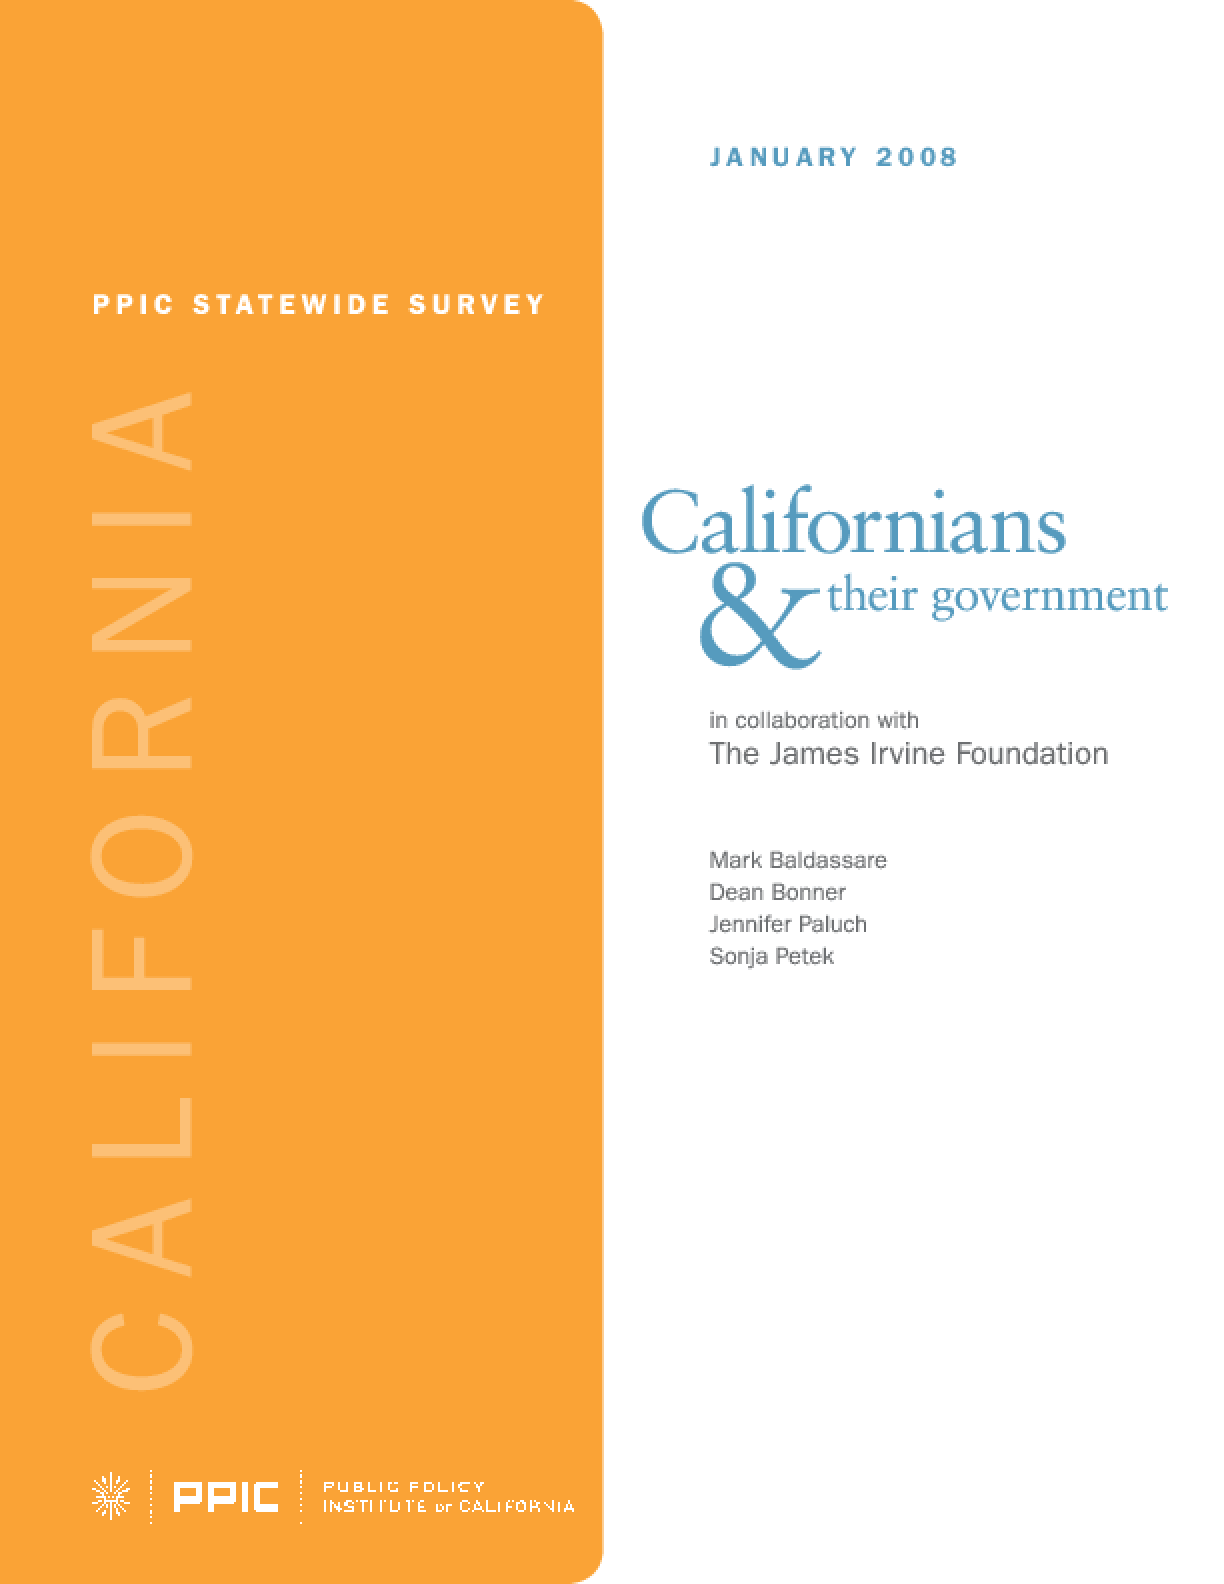 PPIC Statewide Survey: Californians and Their Government January 2008